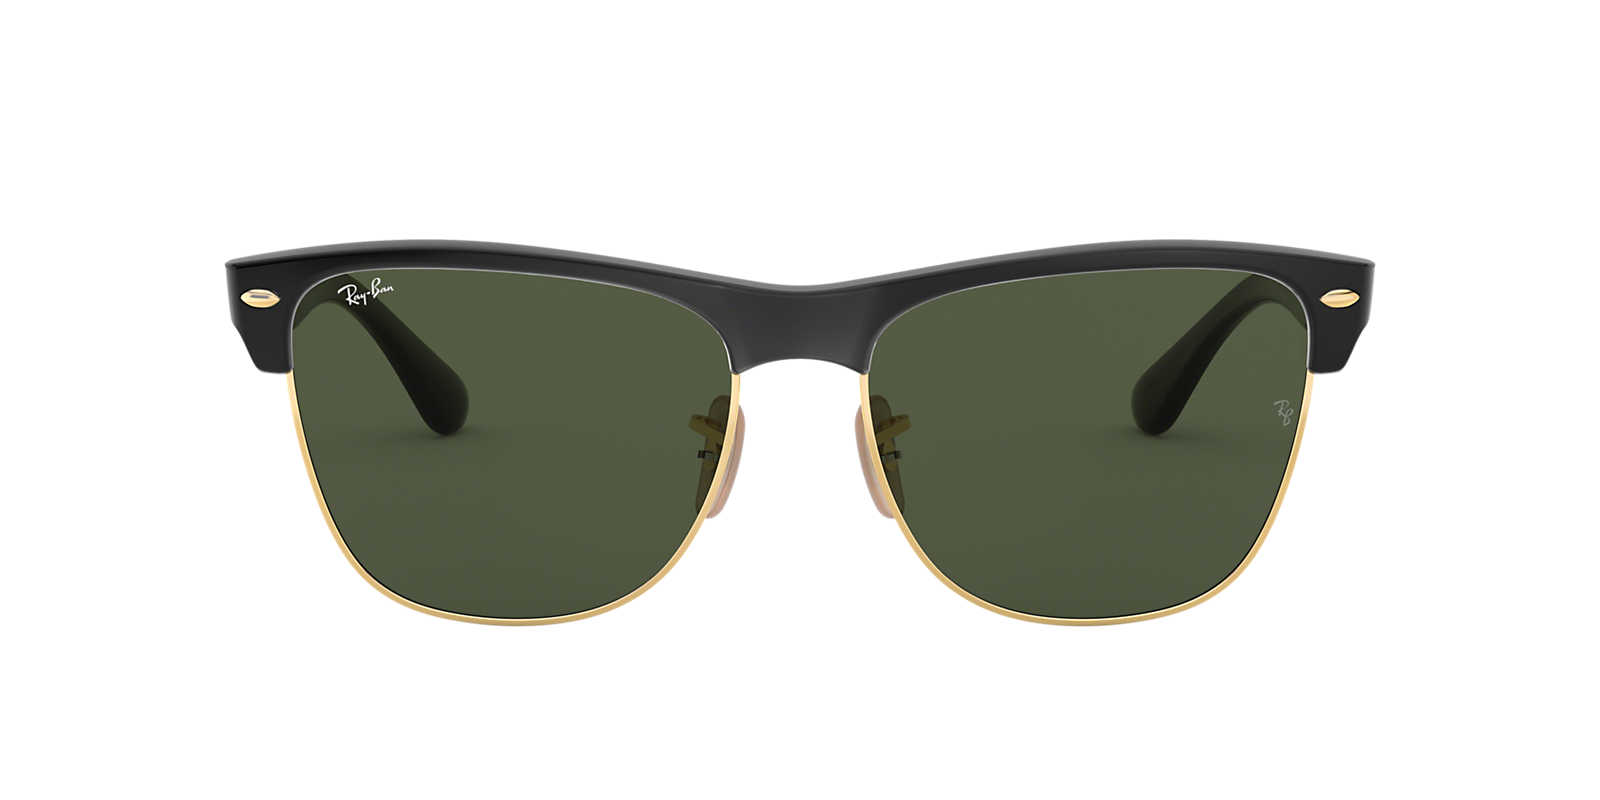 ray ban oversized clubmaster qp8t  RAY-BAN Black RB4175 57 CLUBMASTER OVERSIZED Green lenses 57mm